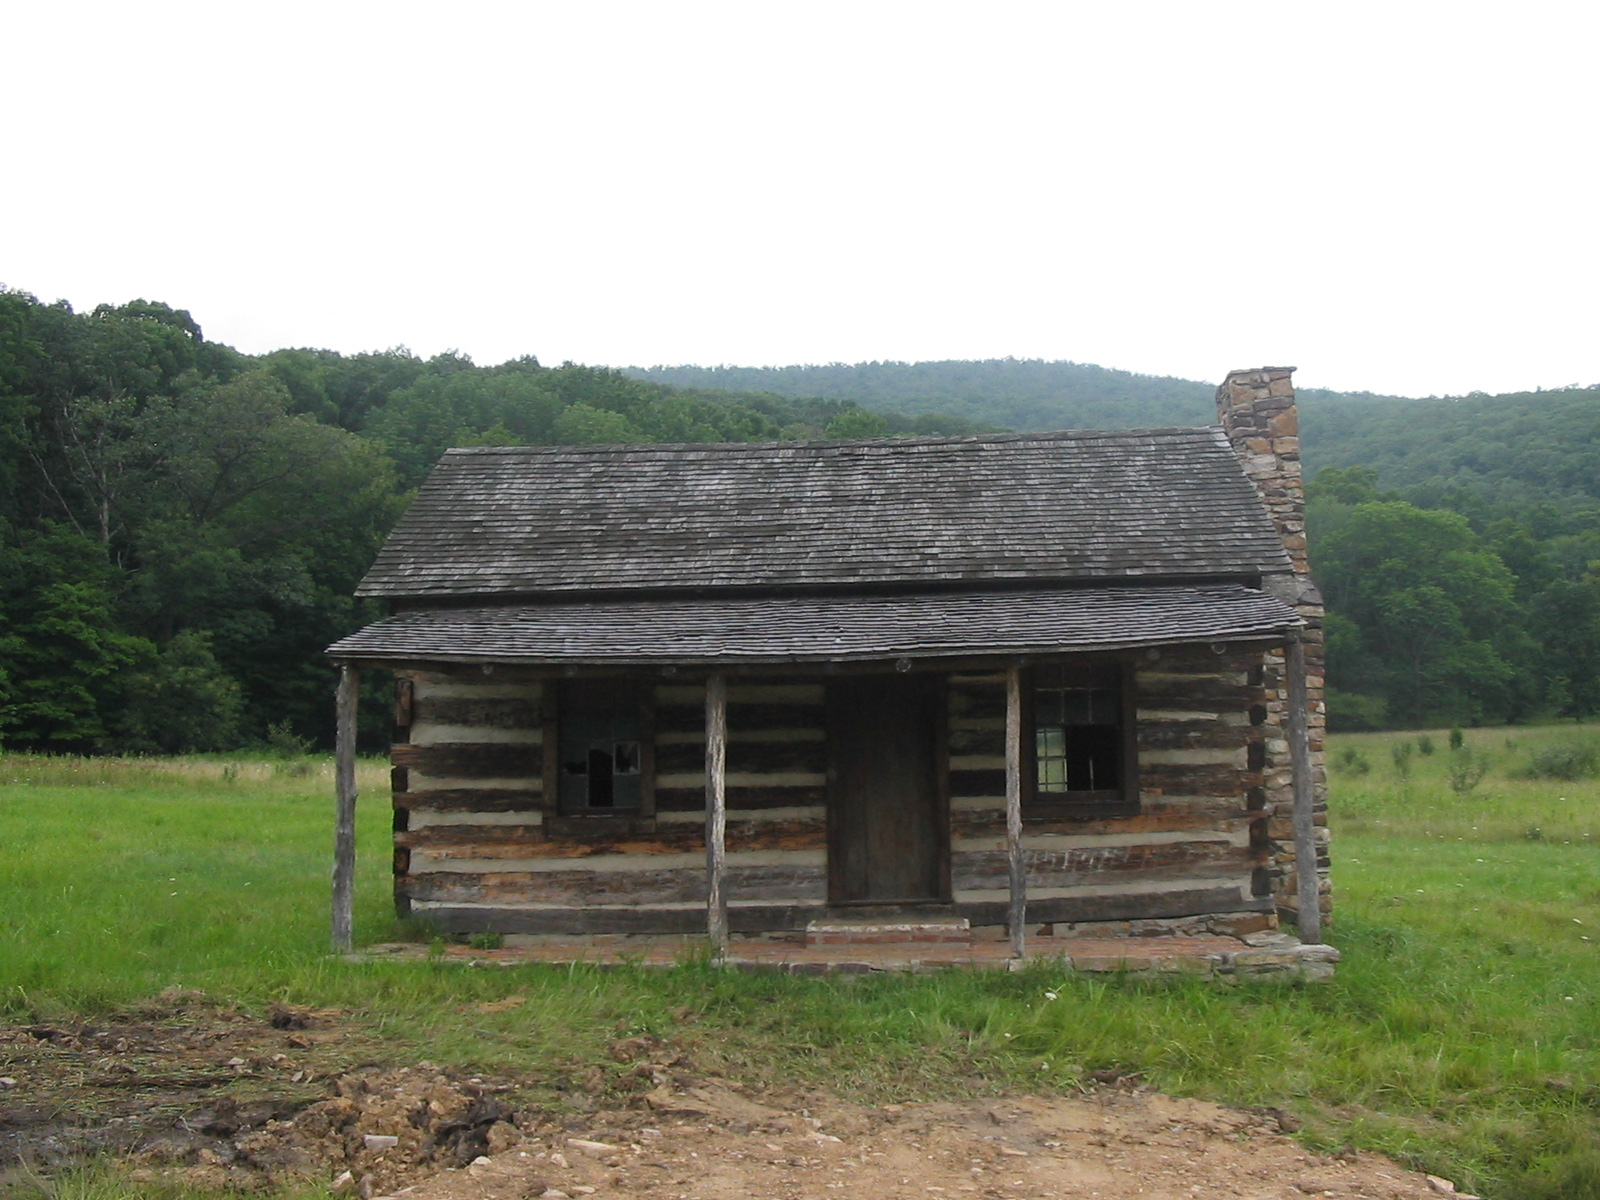 This replica log cabin, brought to the site in either the 1960s or 1970s, stands at the purported location of the original Hanks family cabin. Image obtained from Ser Amantio di Nicolao, Wikipedia.